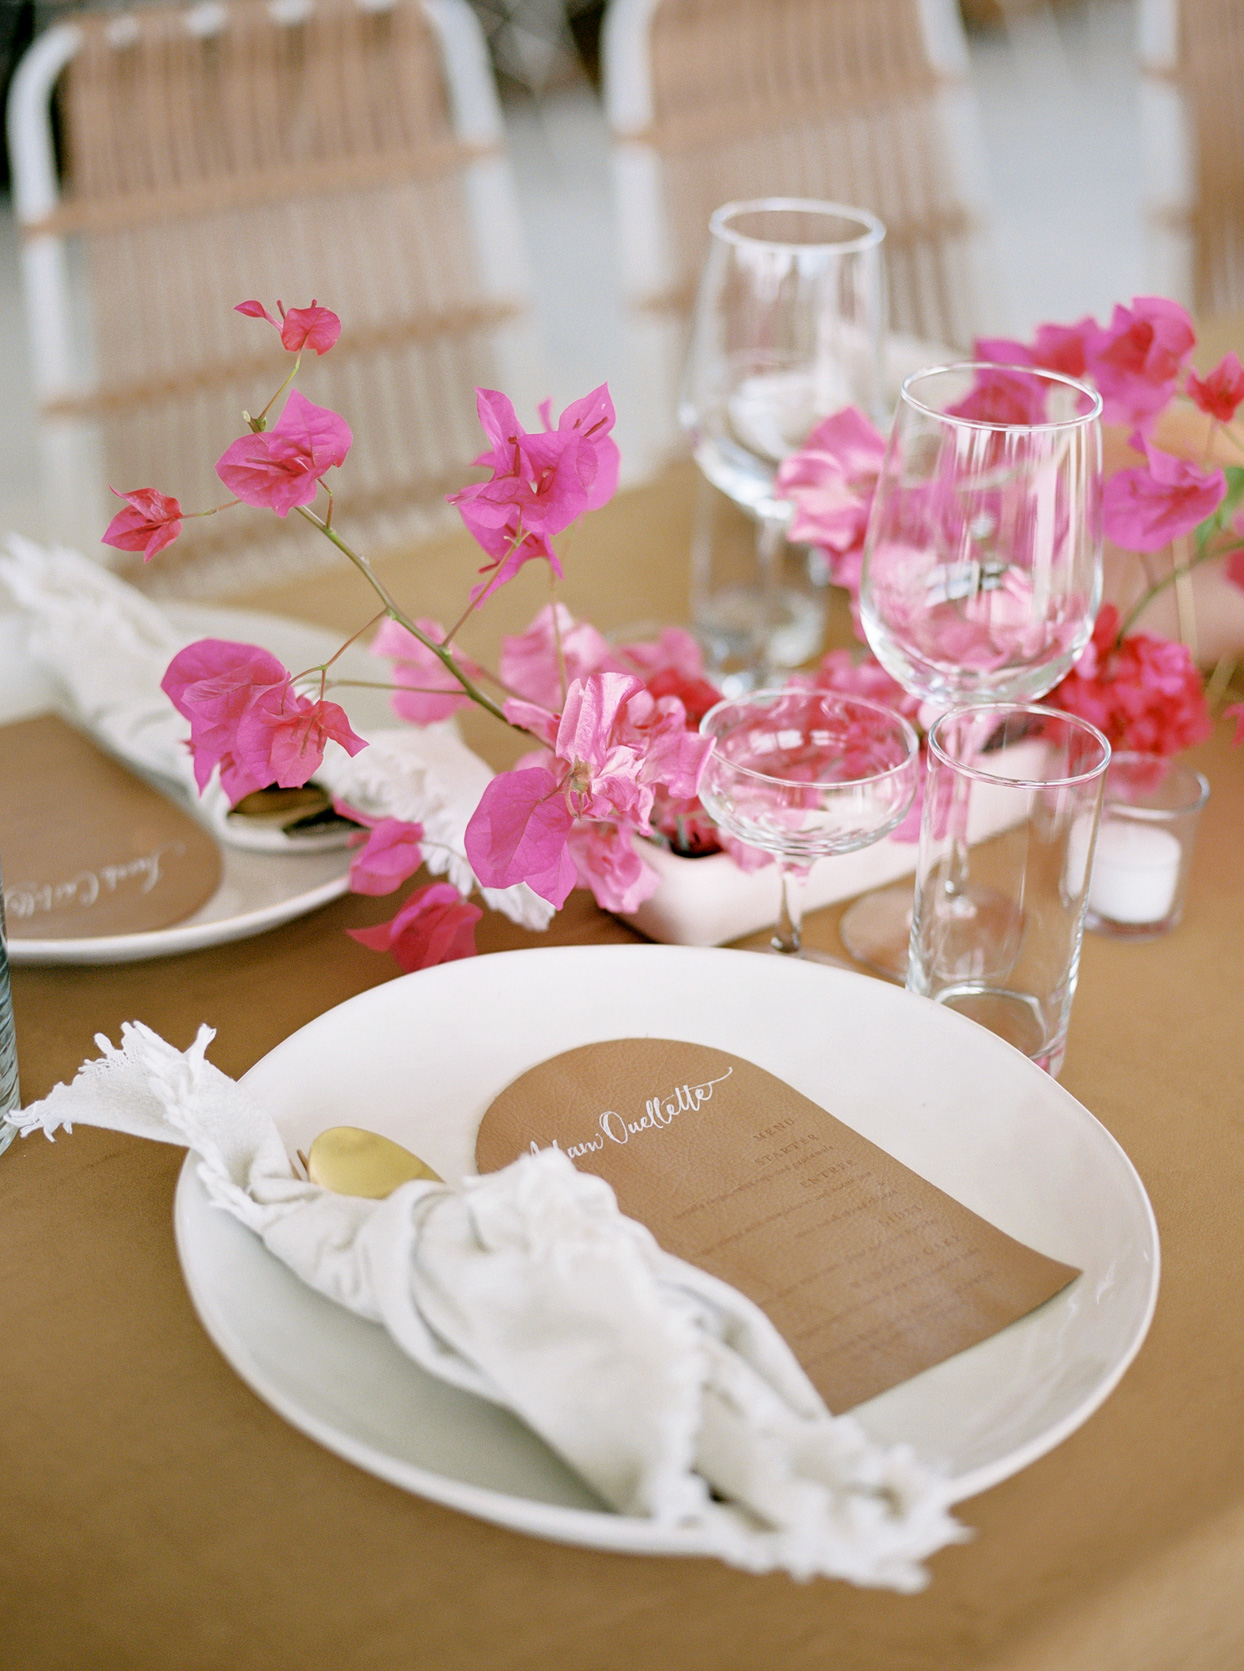 place setting with napkins and menu